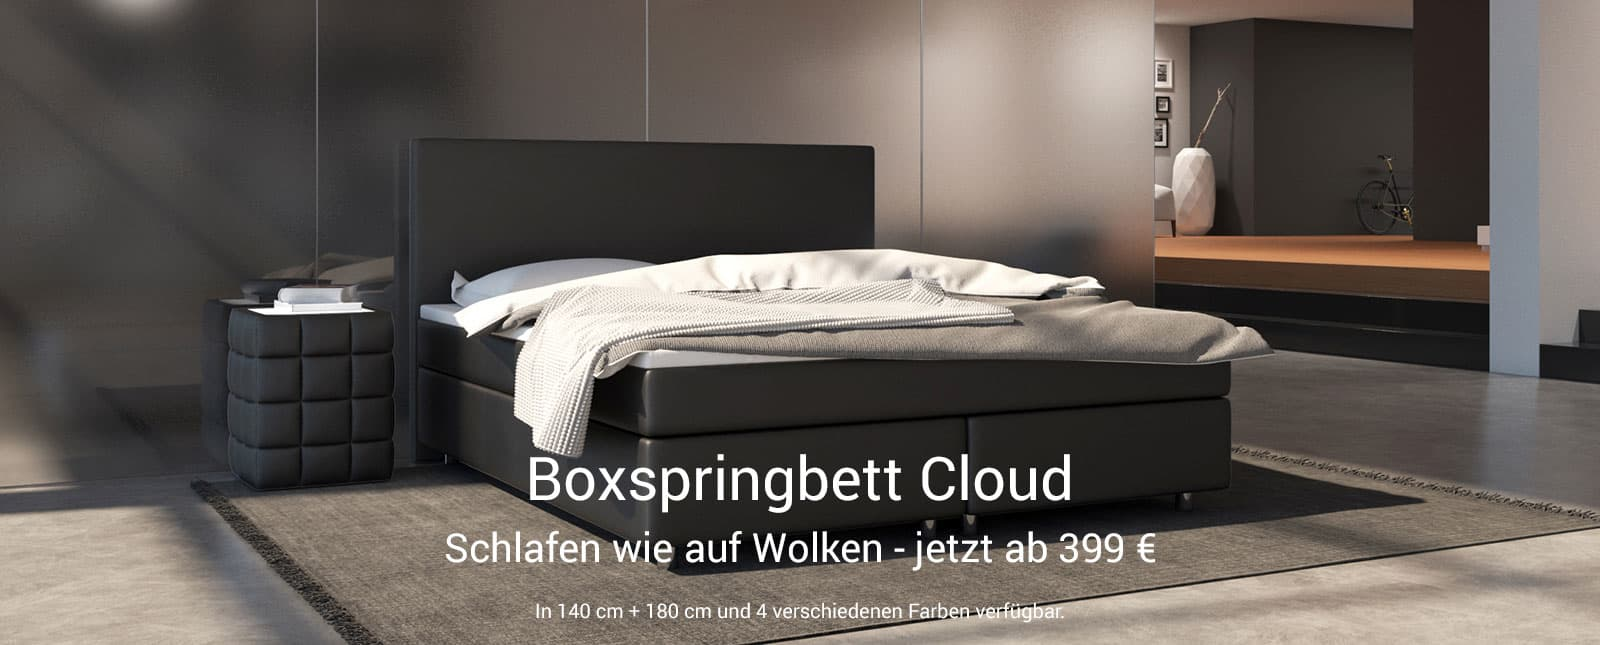 Boxspringbett Cloud